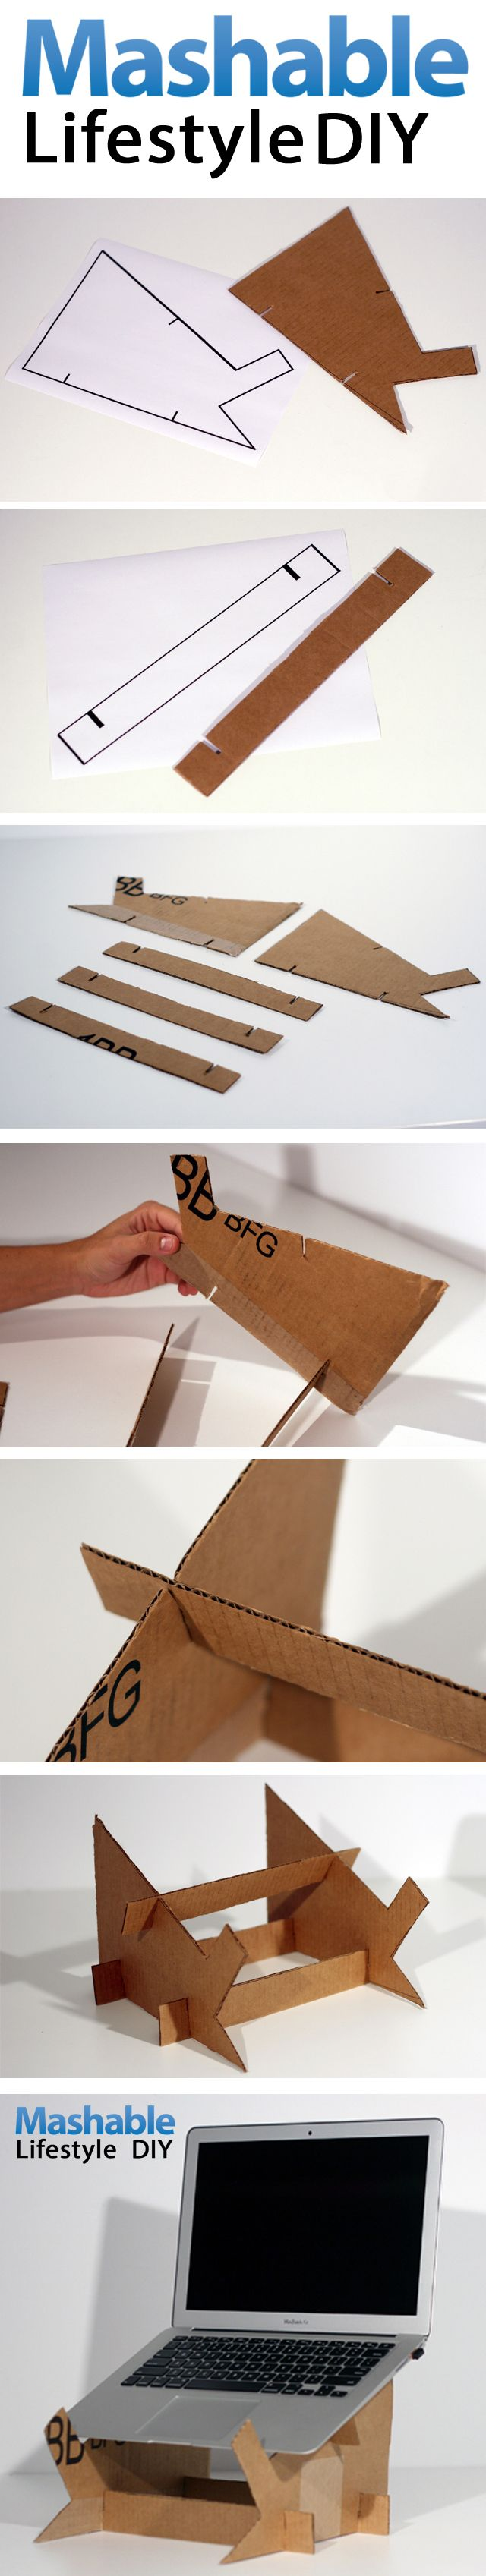 Create Your Own Cardboard Laptop Stand. Click for a printable template.